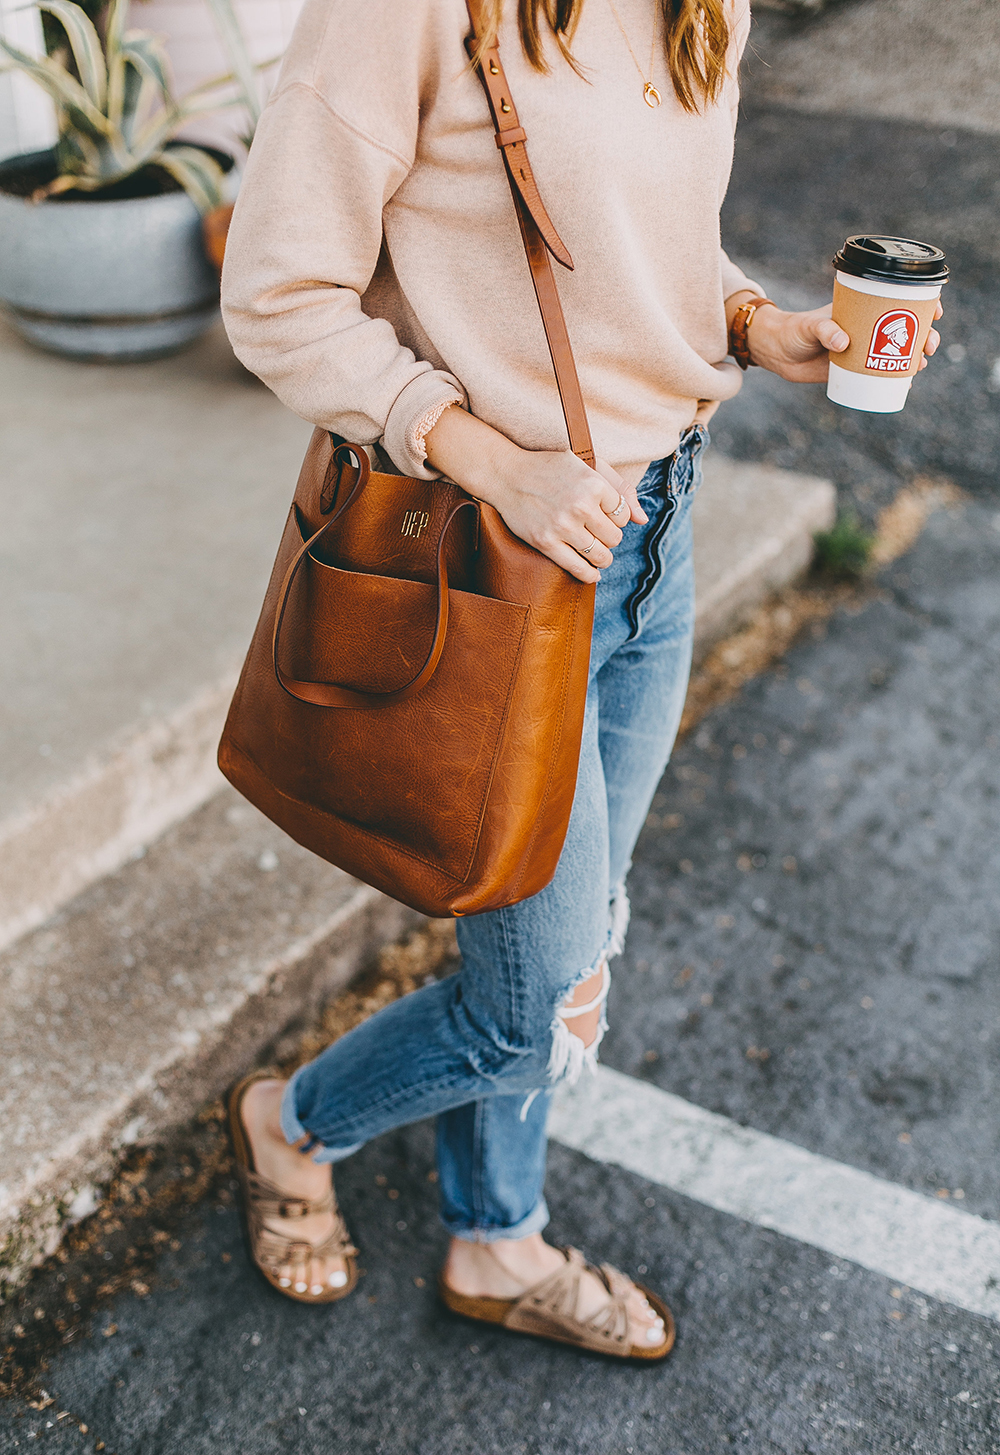 livvyland-blog-olivia-watson-austin-texas-fashion-blogger-madewell-peach-sweatshirt-medium-transport-tote-levis-501-jeans-6